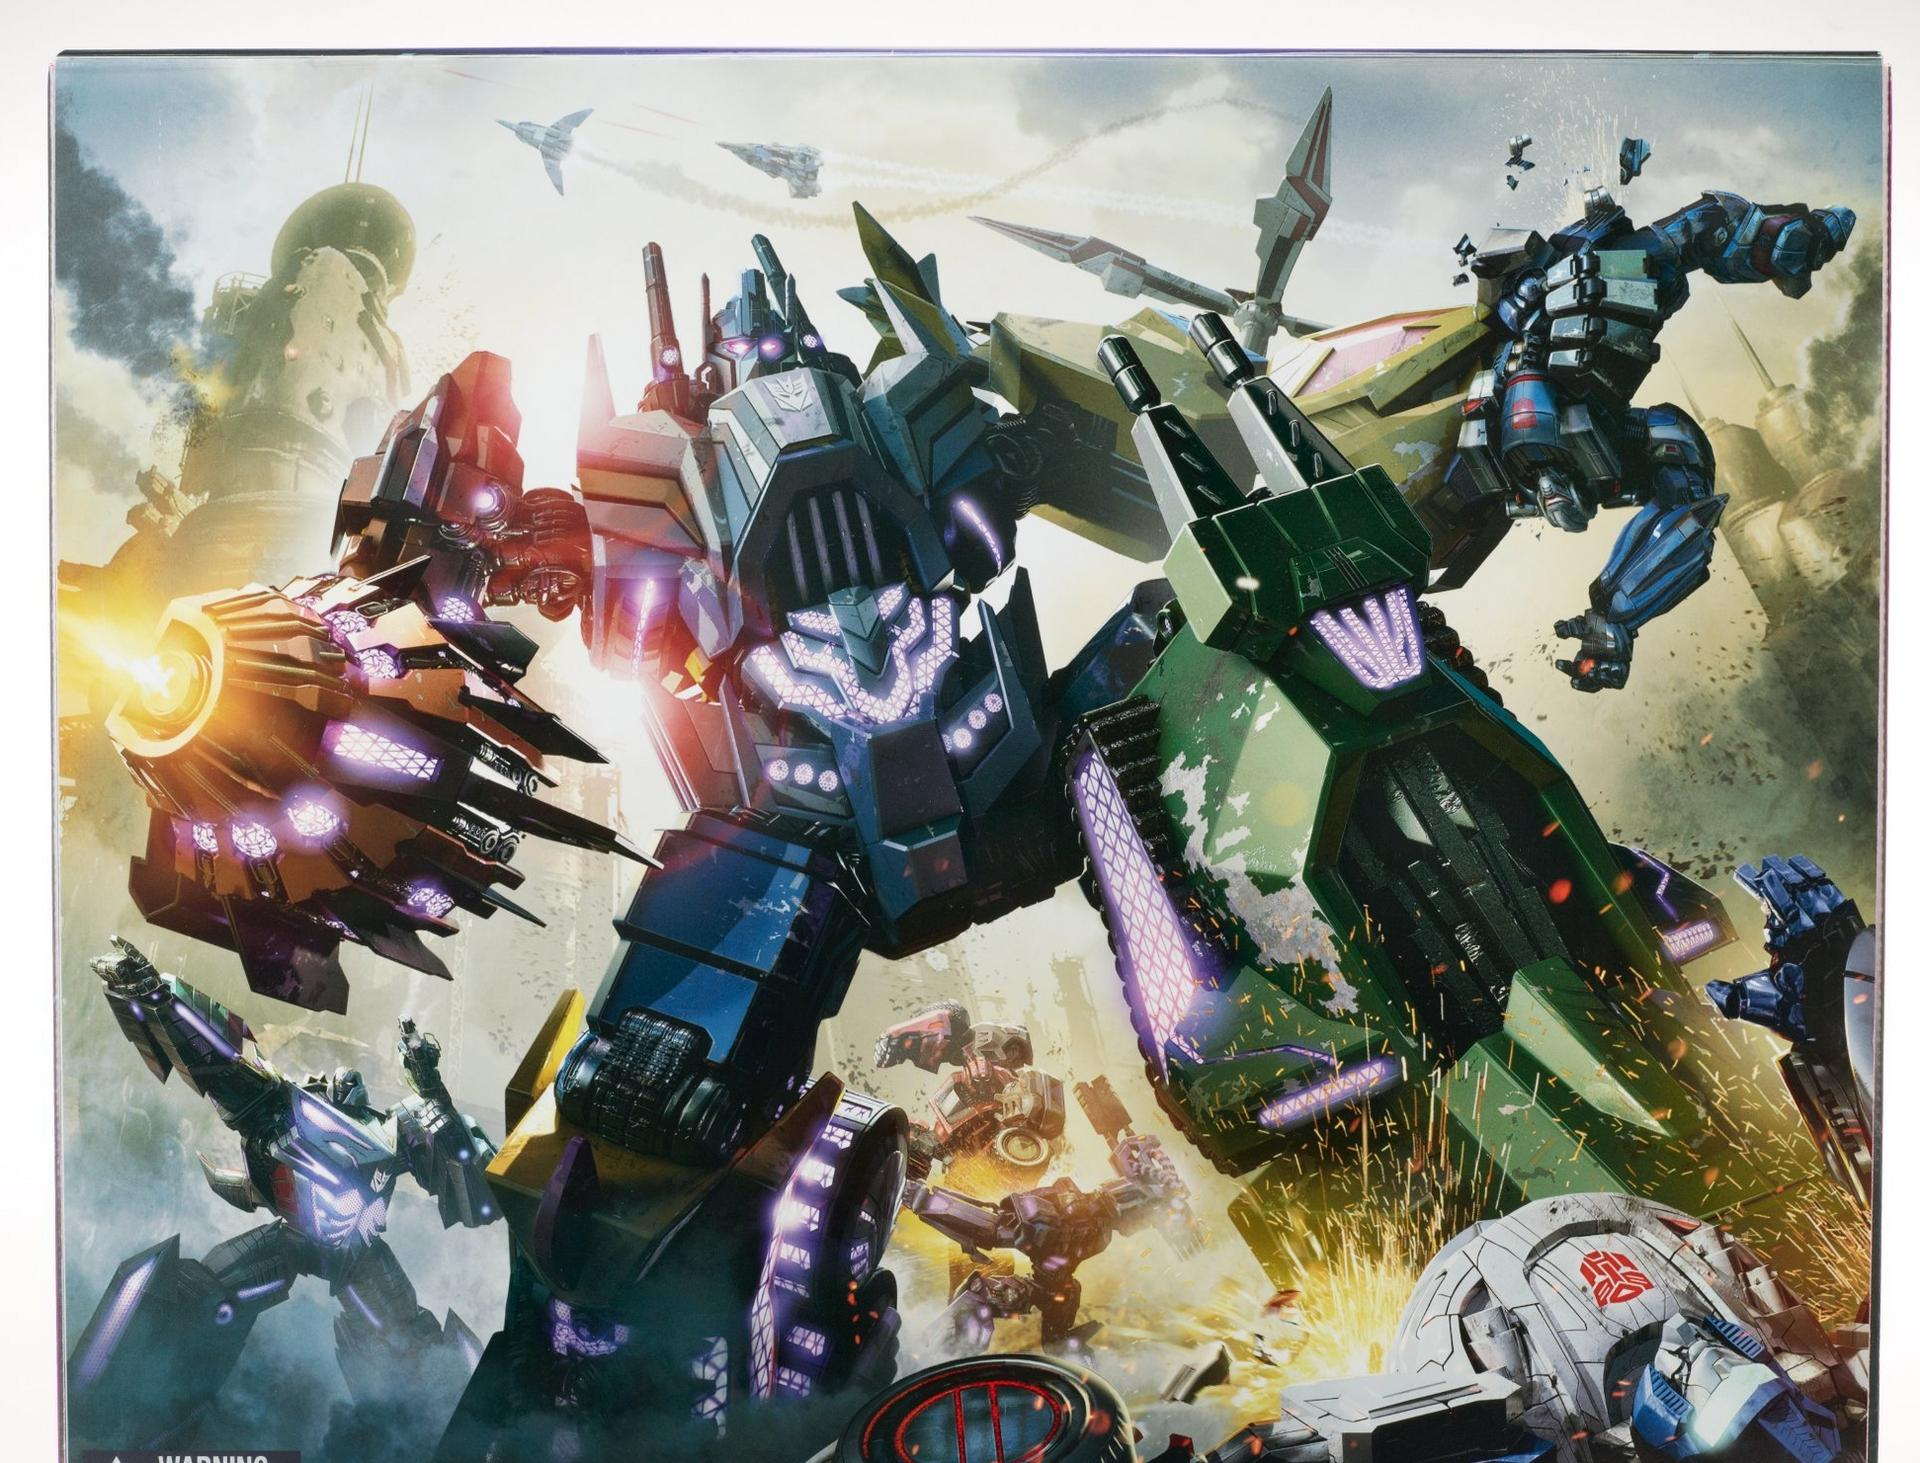 SDCC 2012 Bruticus Gift Set Images From BOTCON-sdcc-bruticus-images.jpg